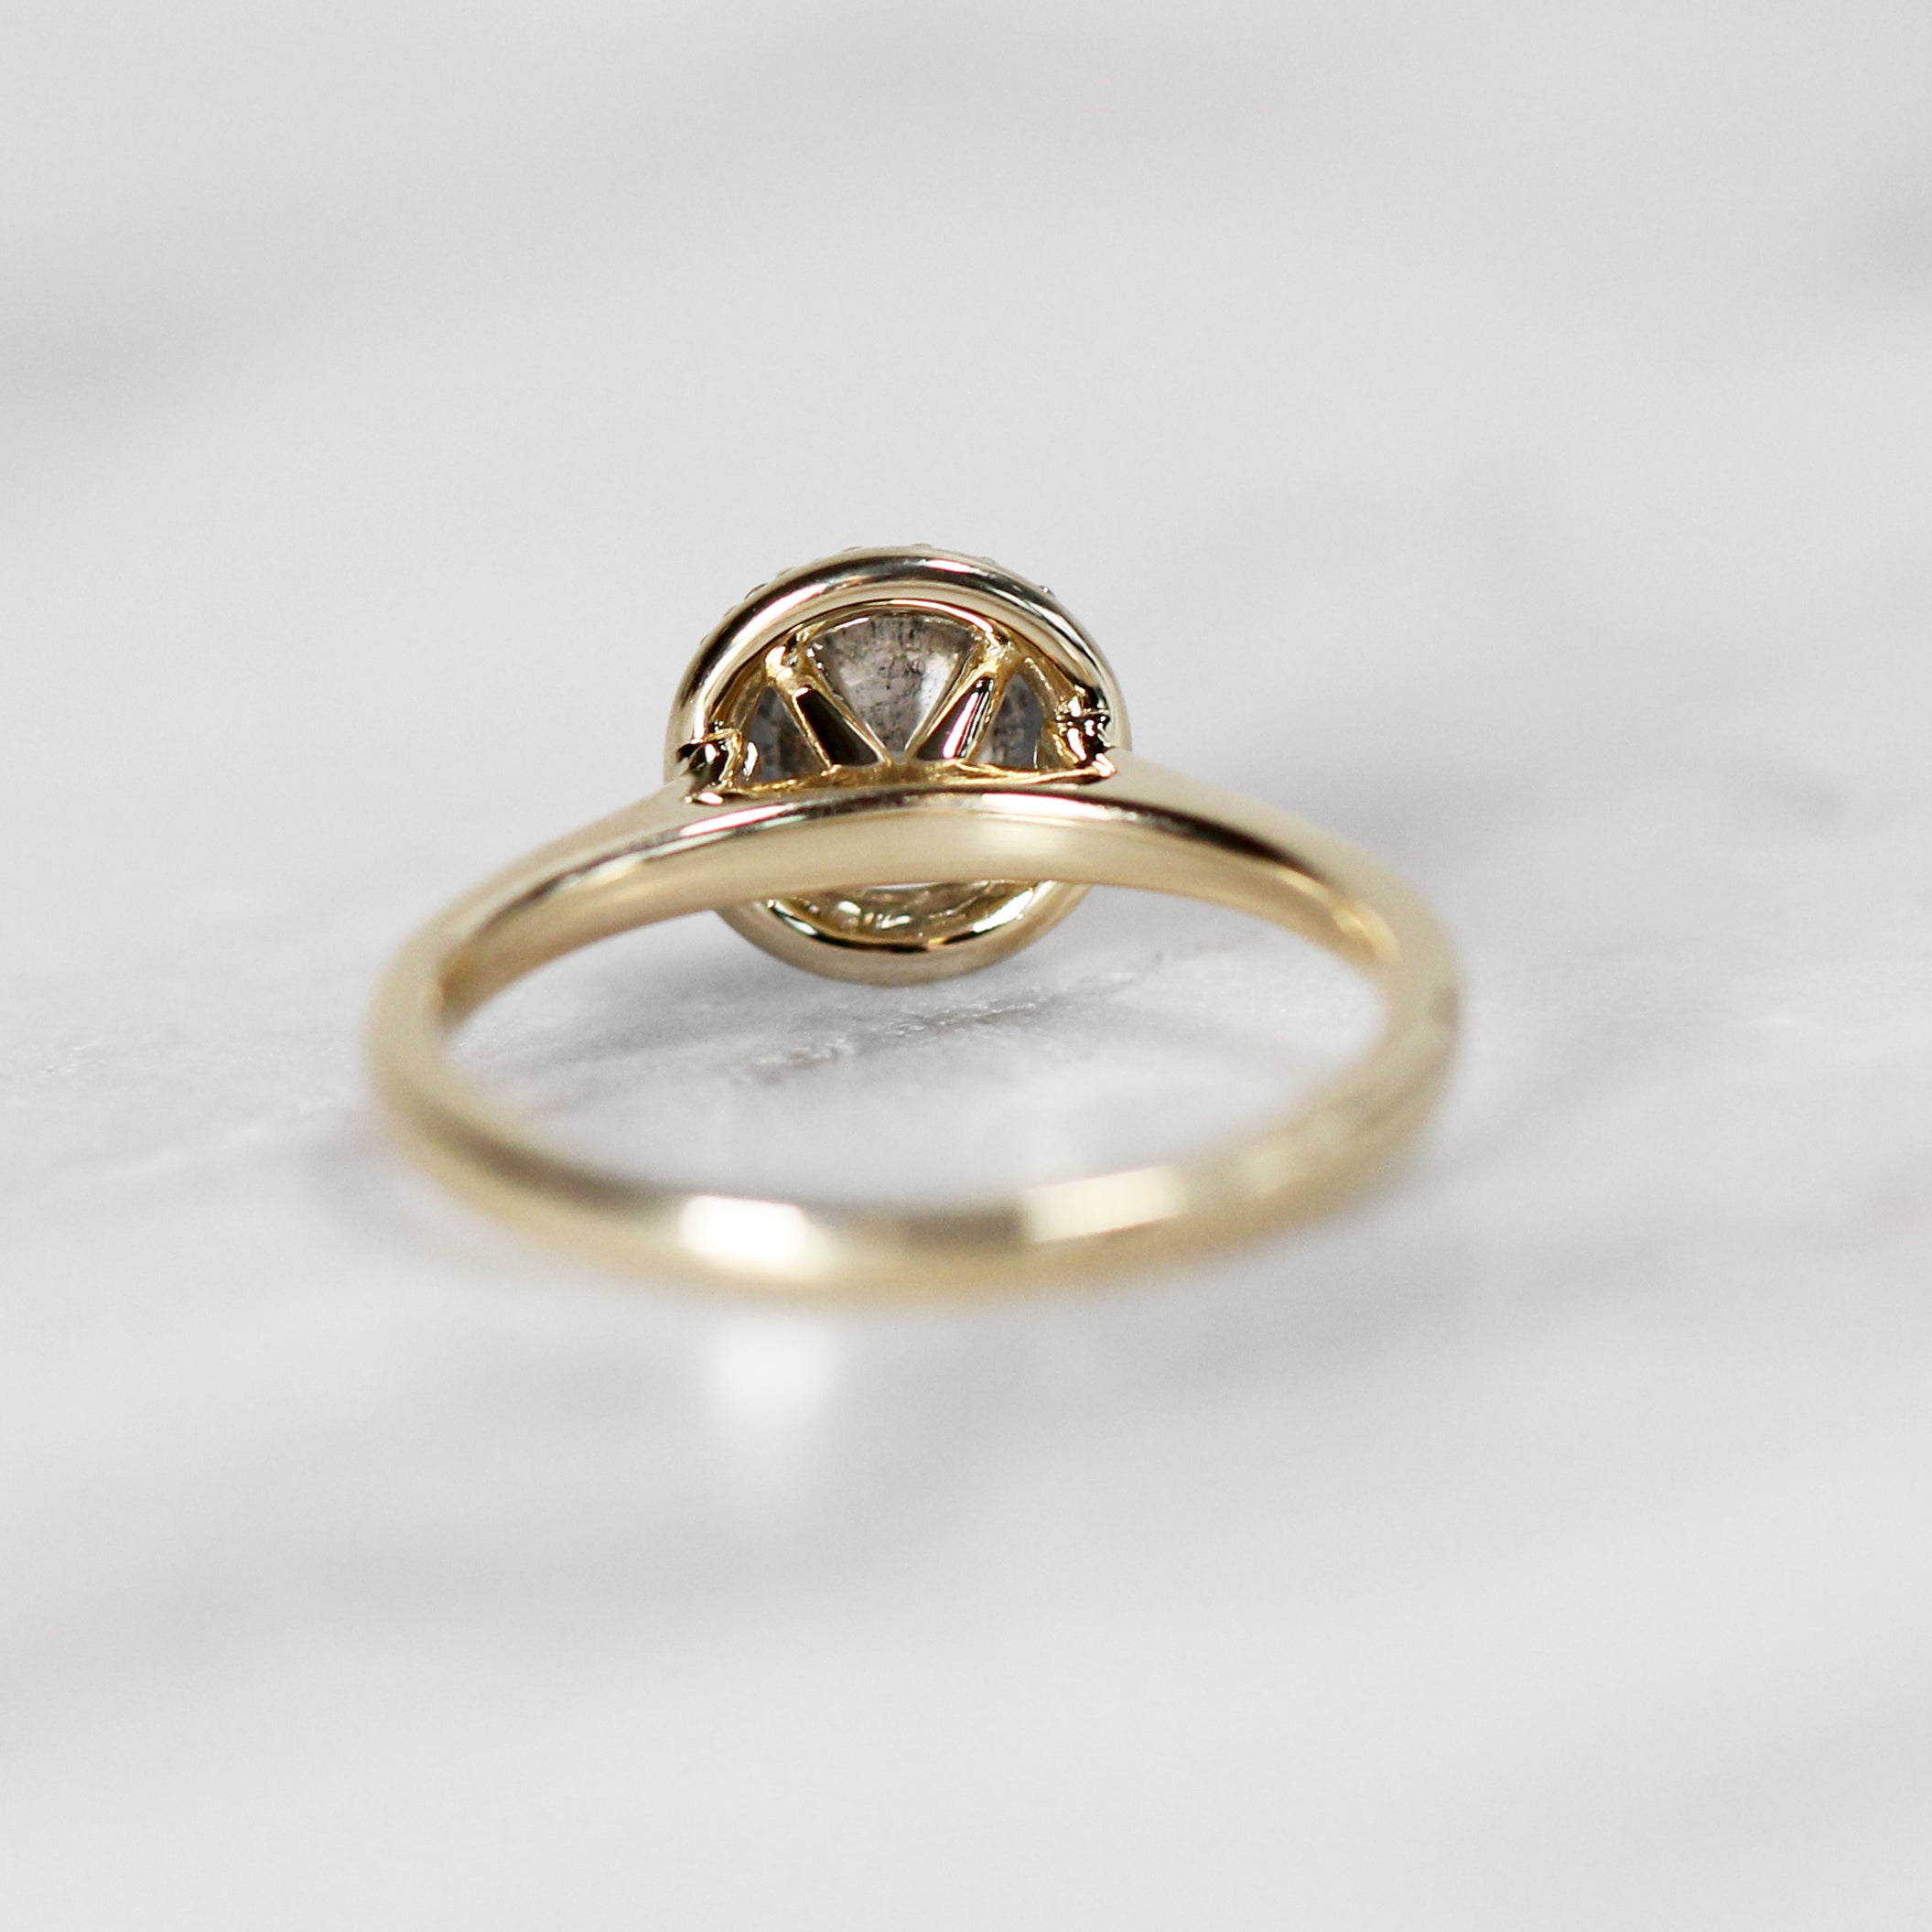 Lydia Ring with .77ct Brilliant Round Celestial Diamond® in 10k Yellow Gold - Ready to size and ship - Celestial Diamonds ® by Midwinter Co.